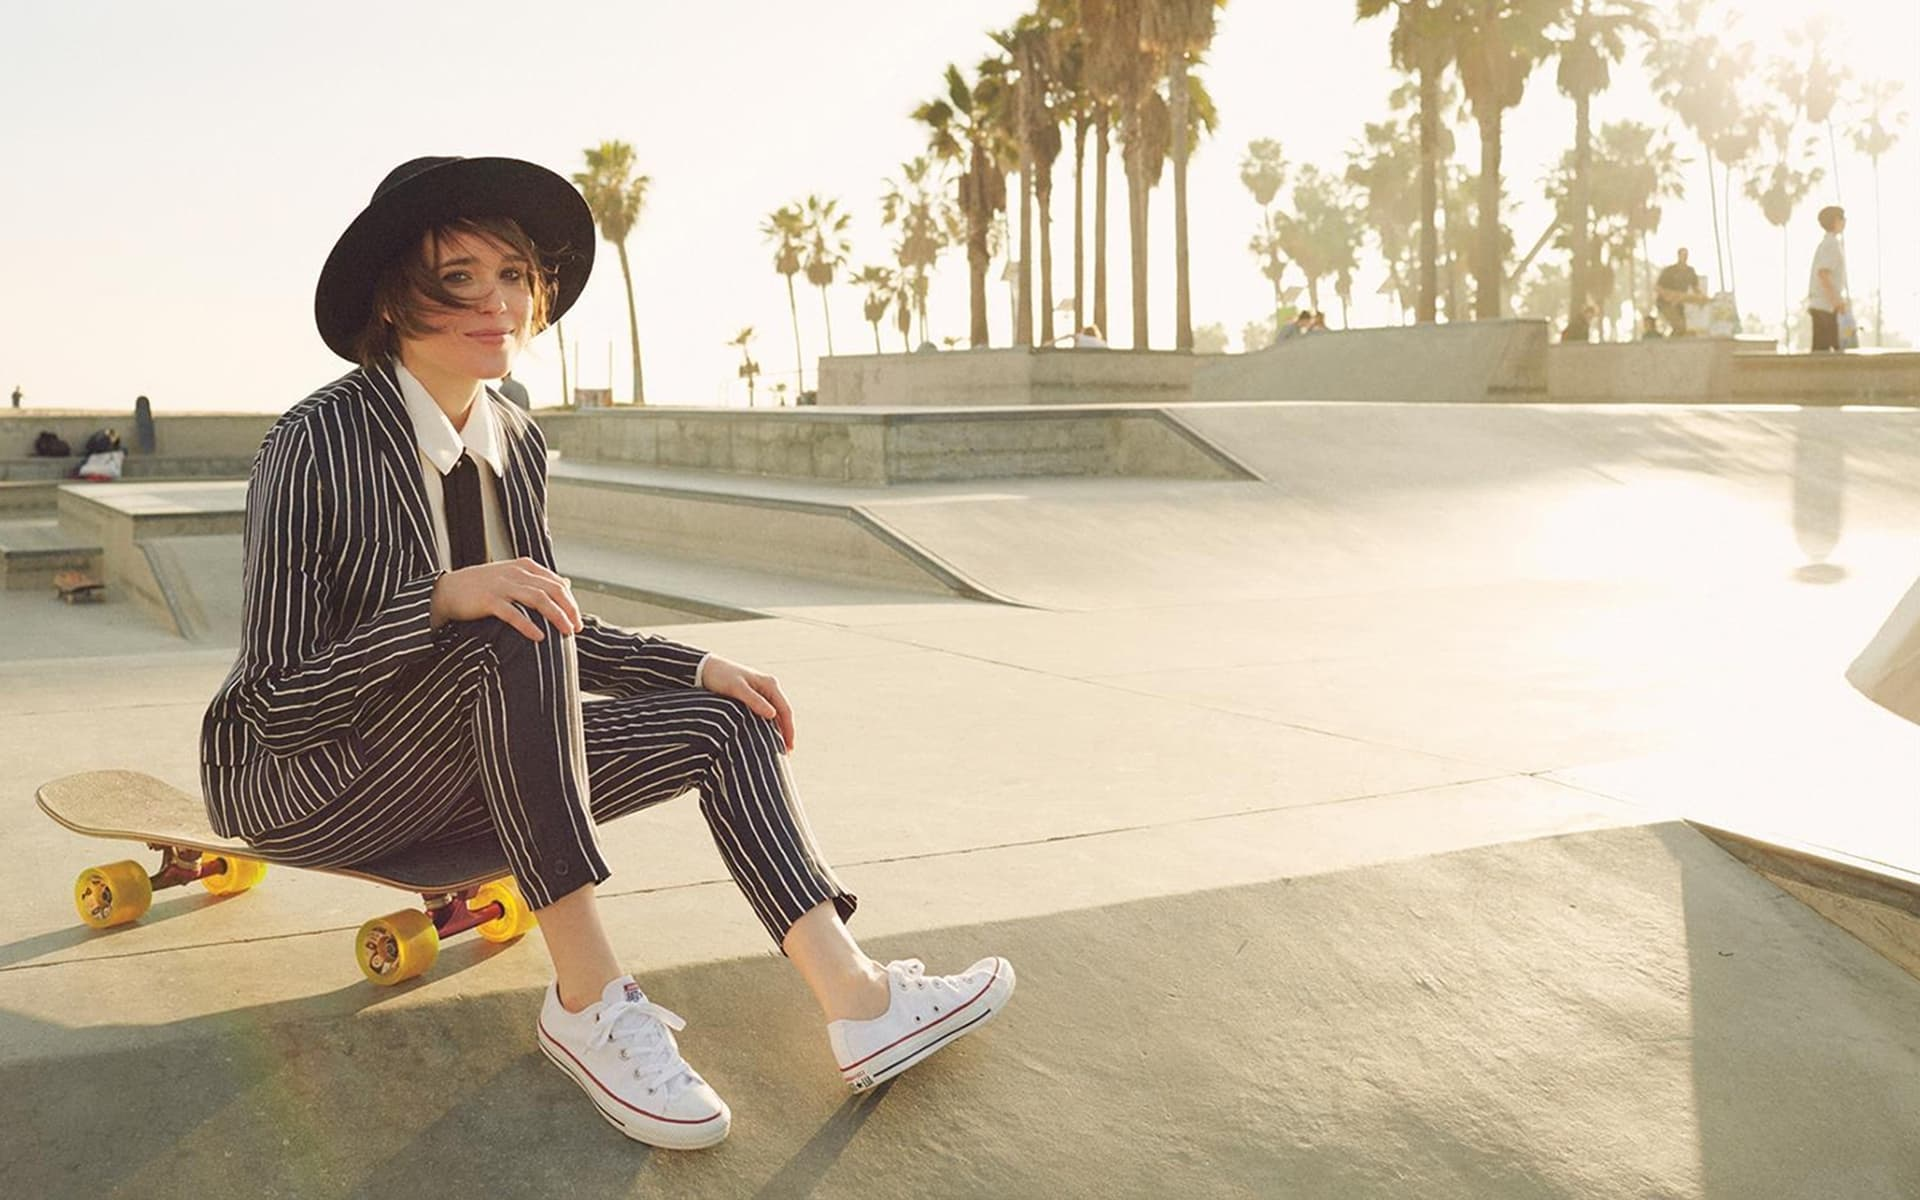 Ellen Page with skate High Quality wallpapers